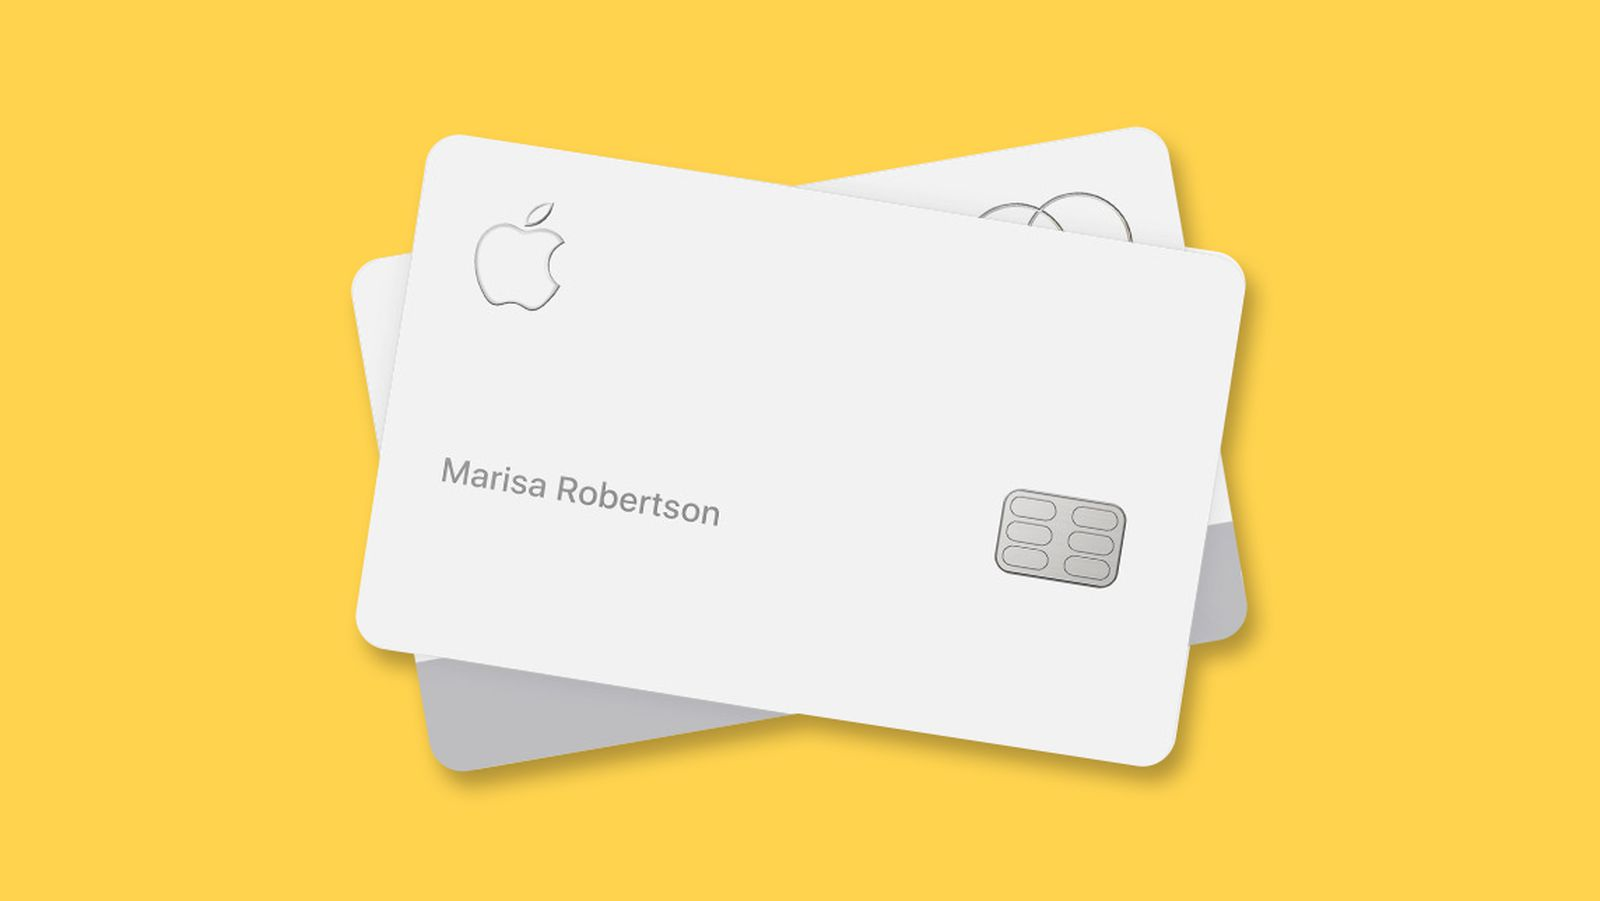 Apple Clarifies That Missed Apple Card Payments Don't Affect Apple ID - MacRumors